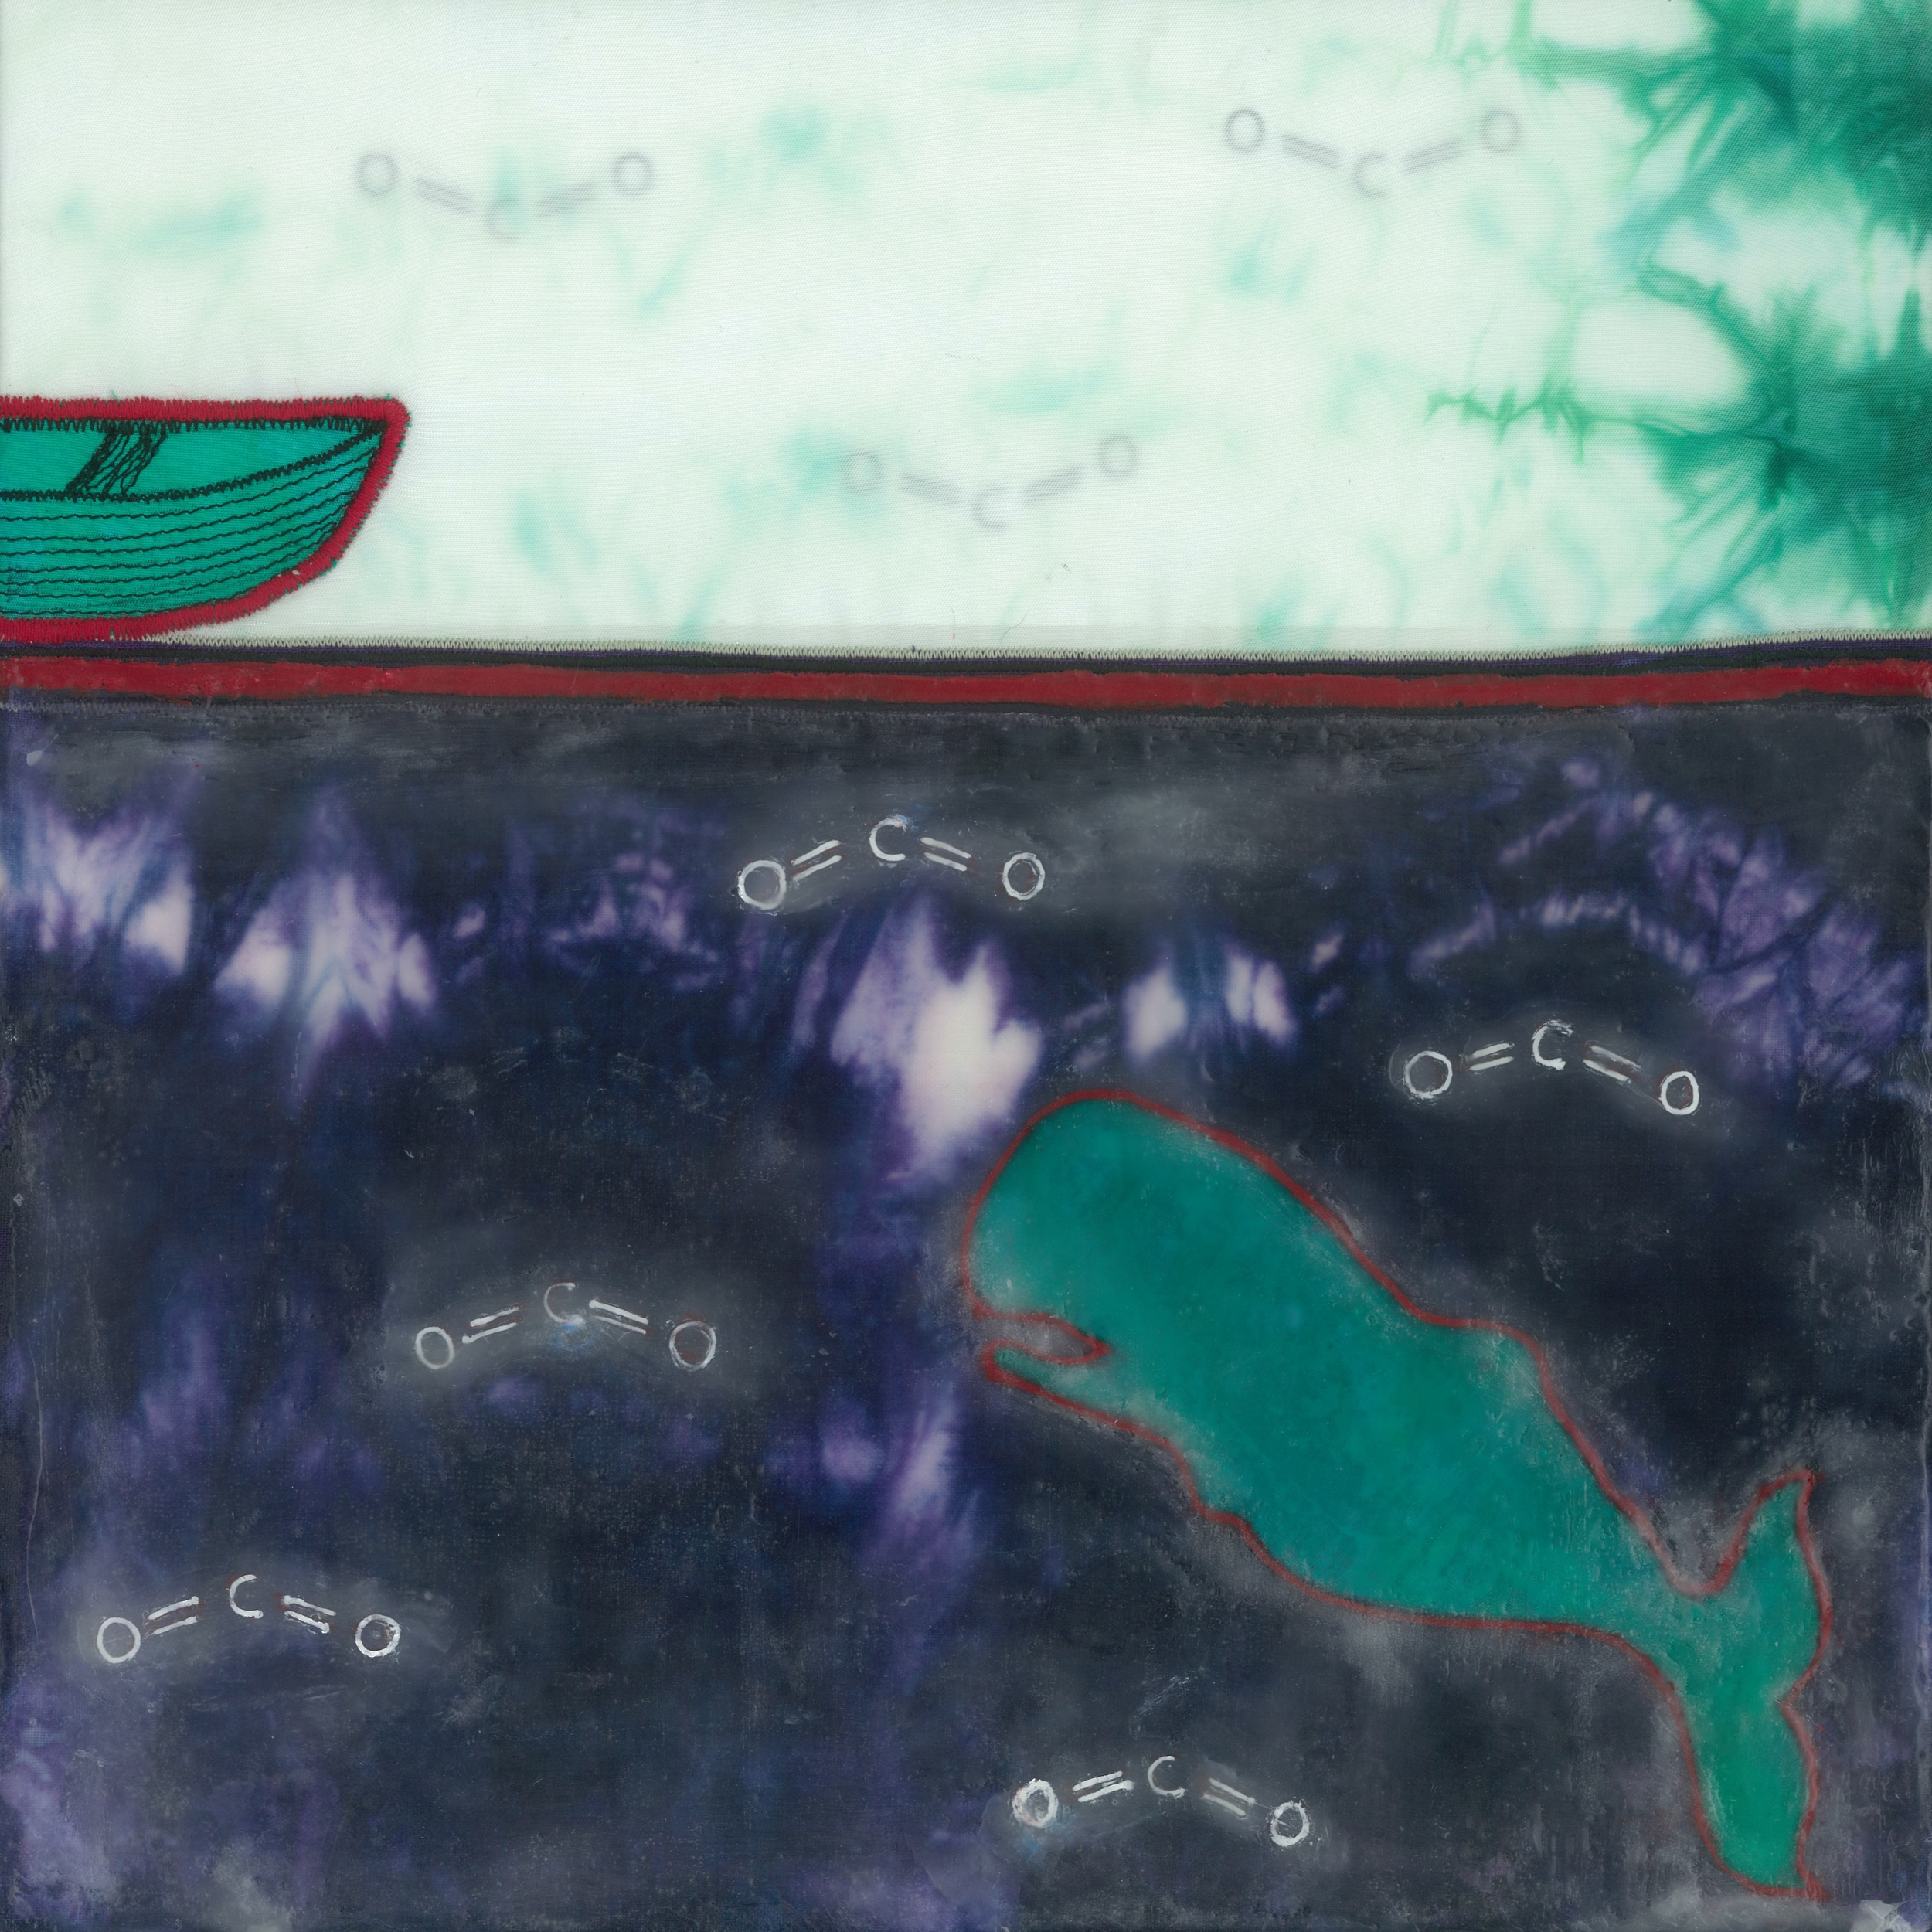 Atmospheric jolt (c) 2014. Diane reardon. $180. (Sperm whale orients to rowboat in water with co2 levels)